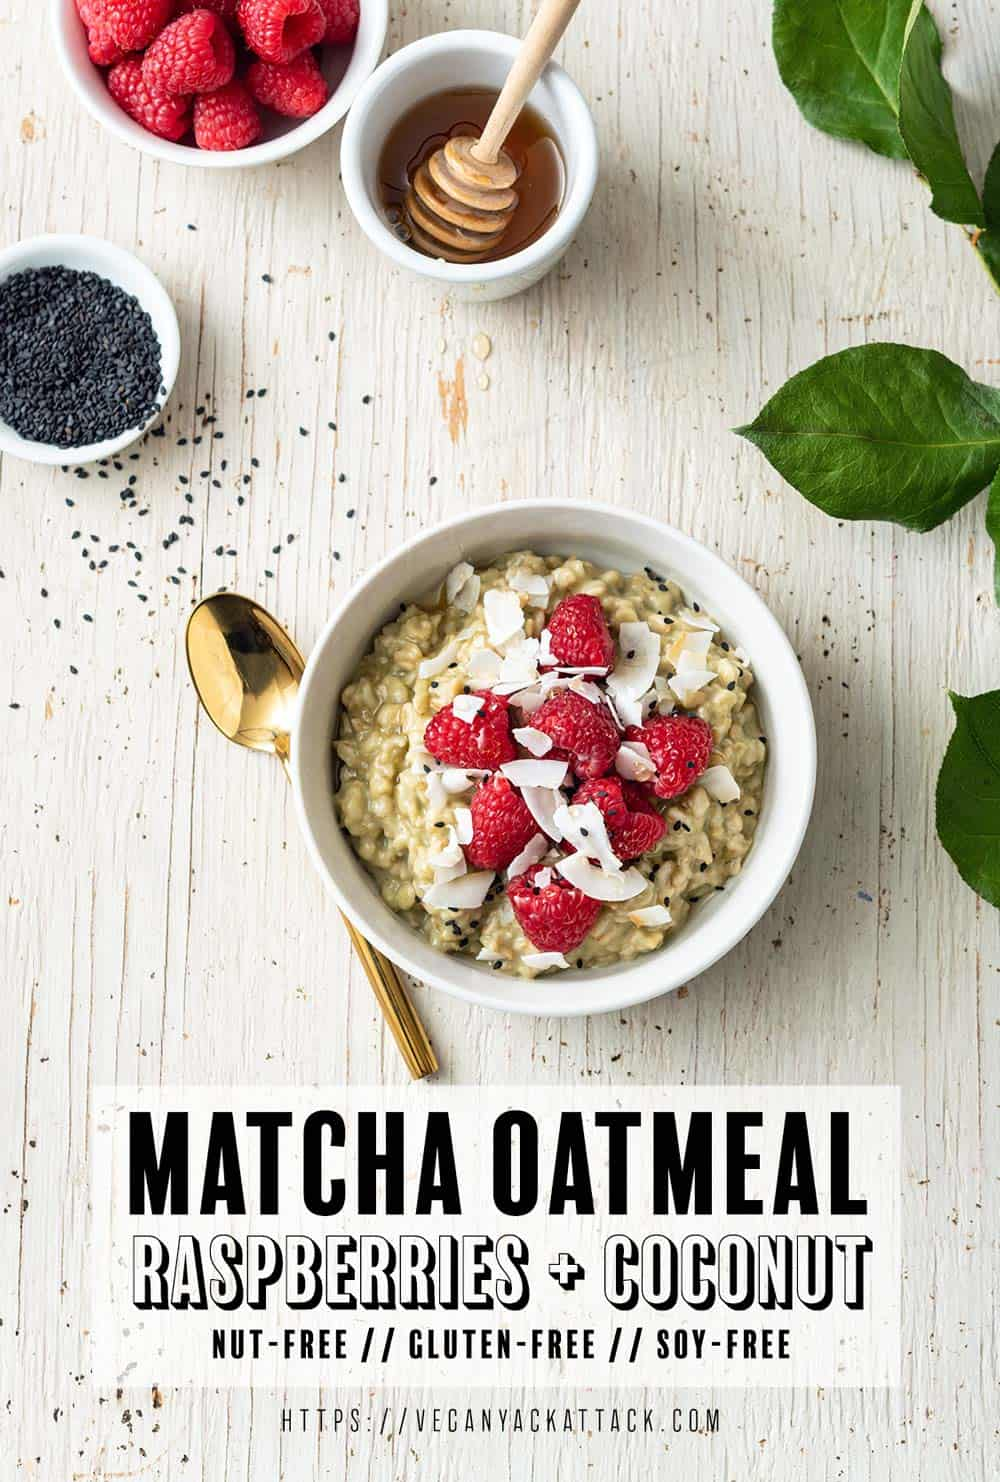 Image of white bowl with matcha oatmeal, topped with raspberries, on a white wood background, with leaves to the side